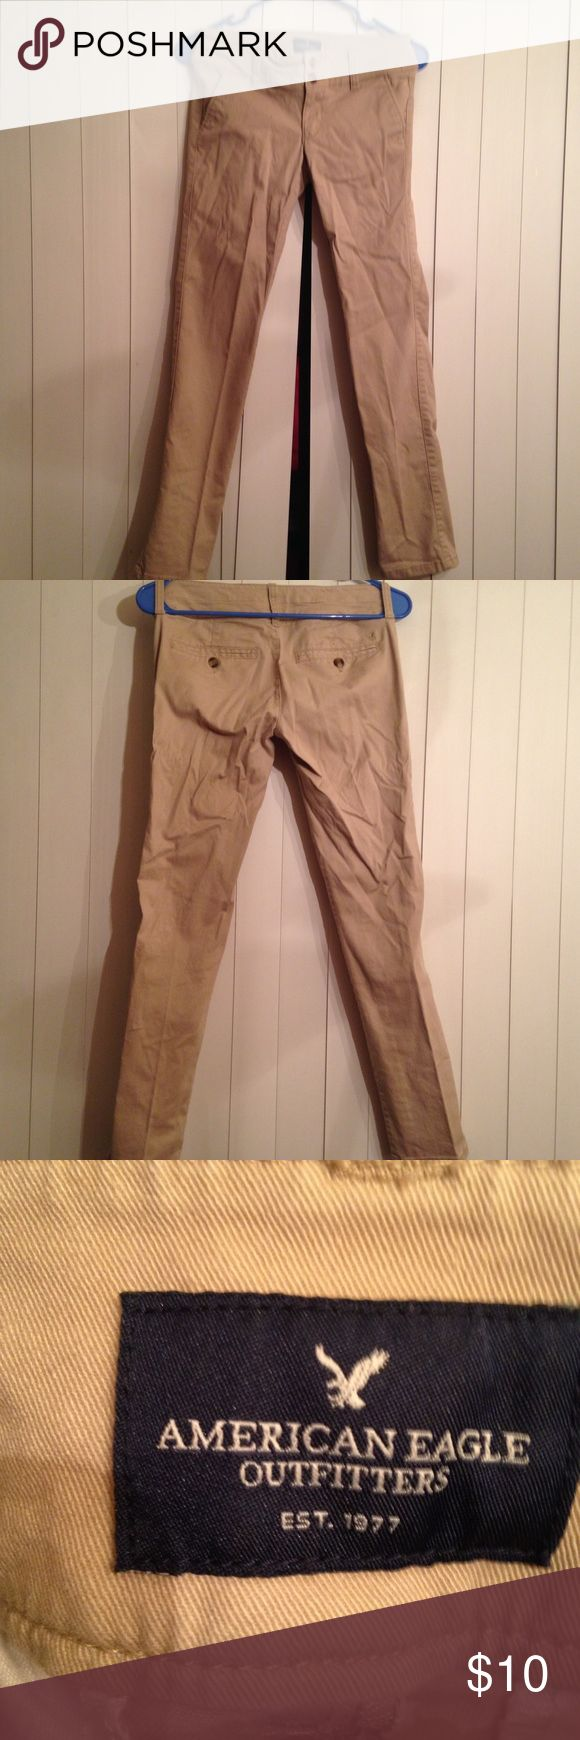 American eagle outfitters skinny khaki pants American Eagle Outfitters skinny khaki pants size 00 in excellent condition. From smoke free home with a fur baby🐶 American Eagle Outfitters Pants Skinny